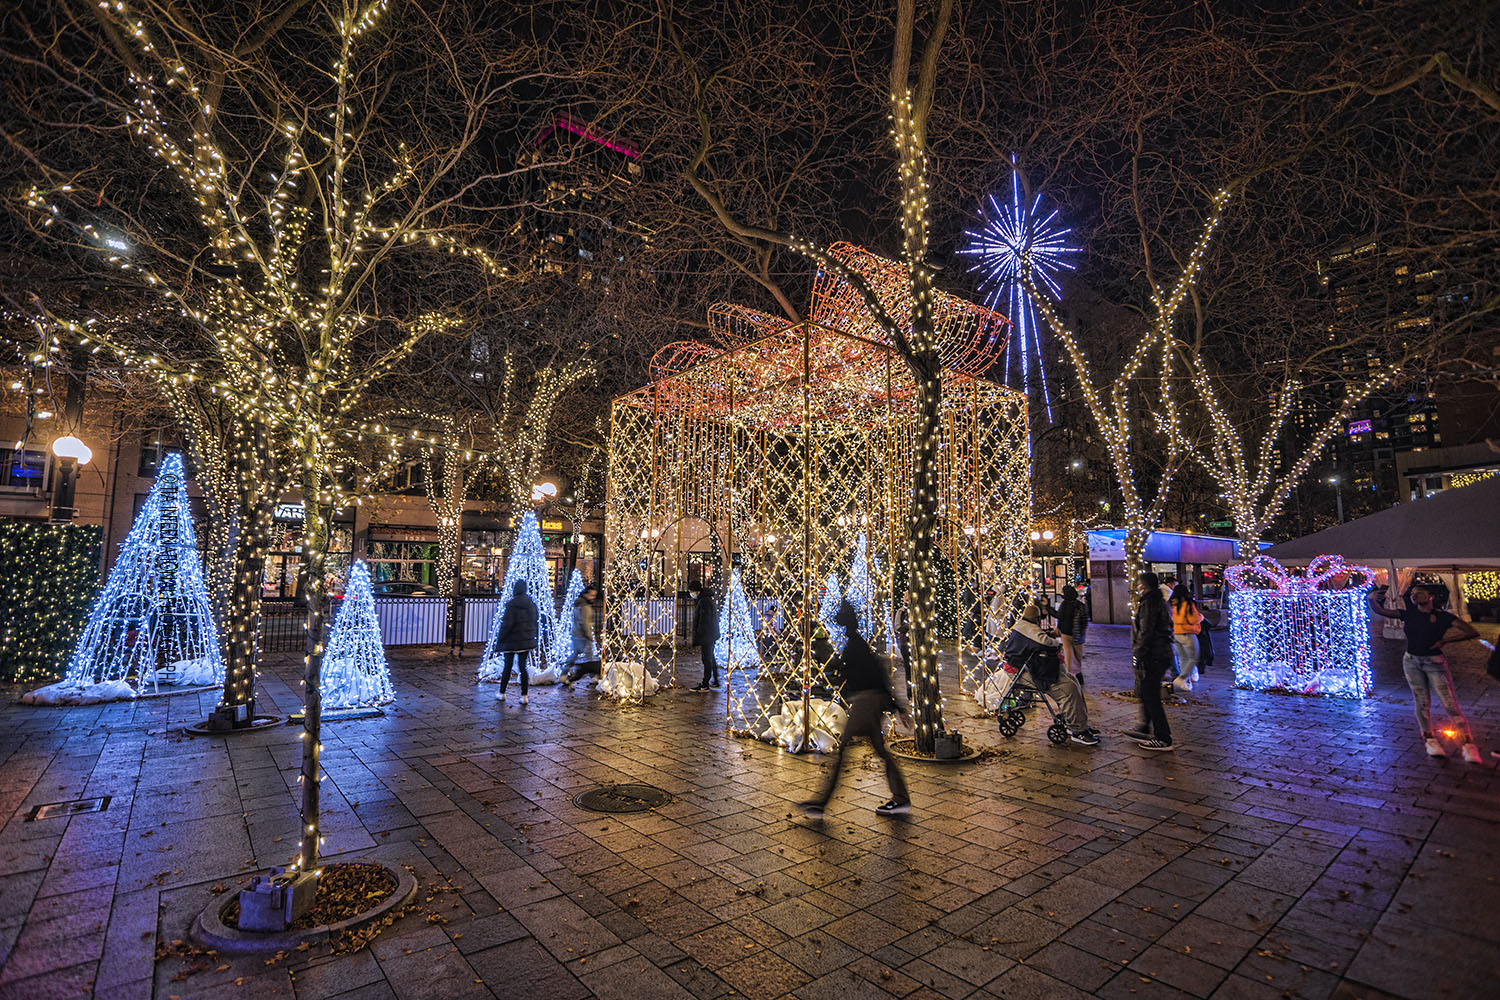 Westlake Park during the holiday season, Downtown Seattle. (December 17, 2020)